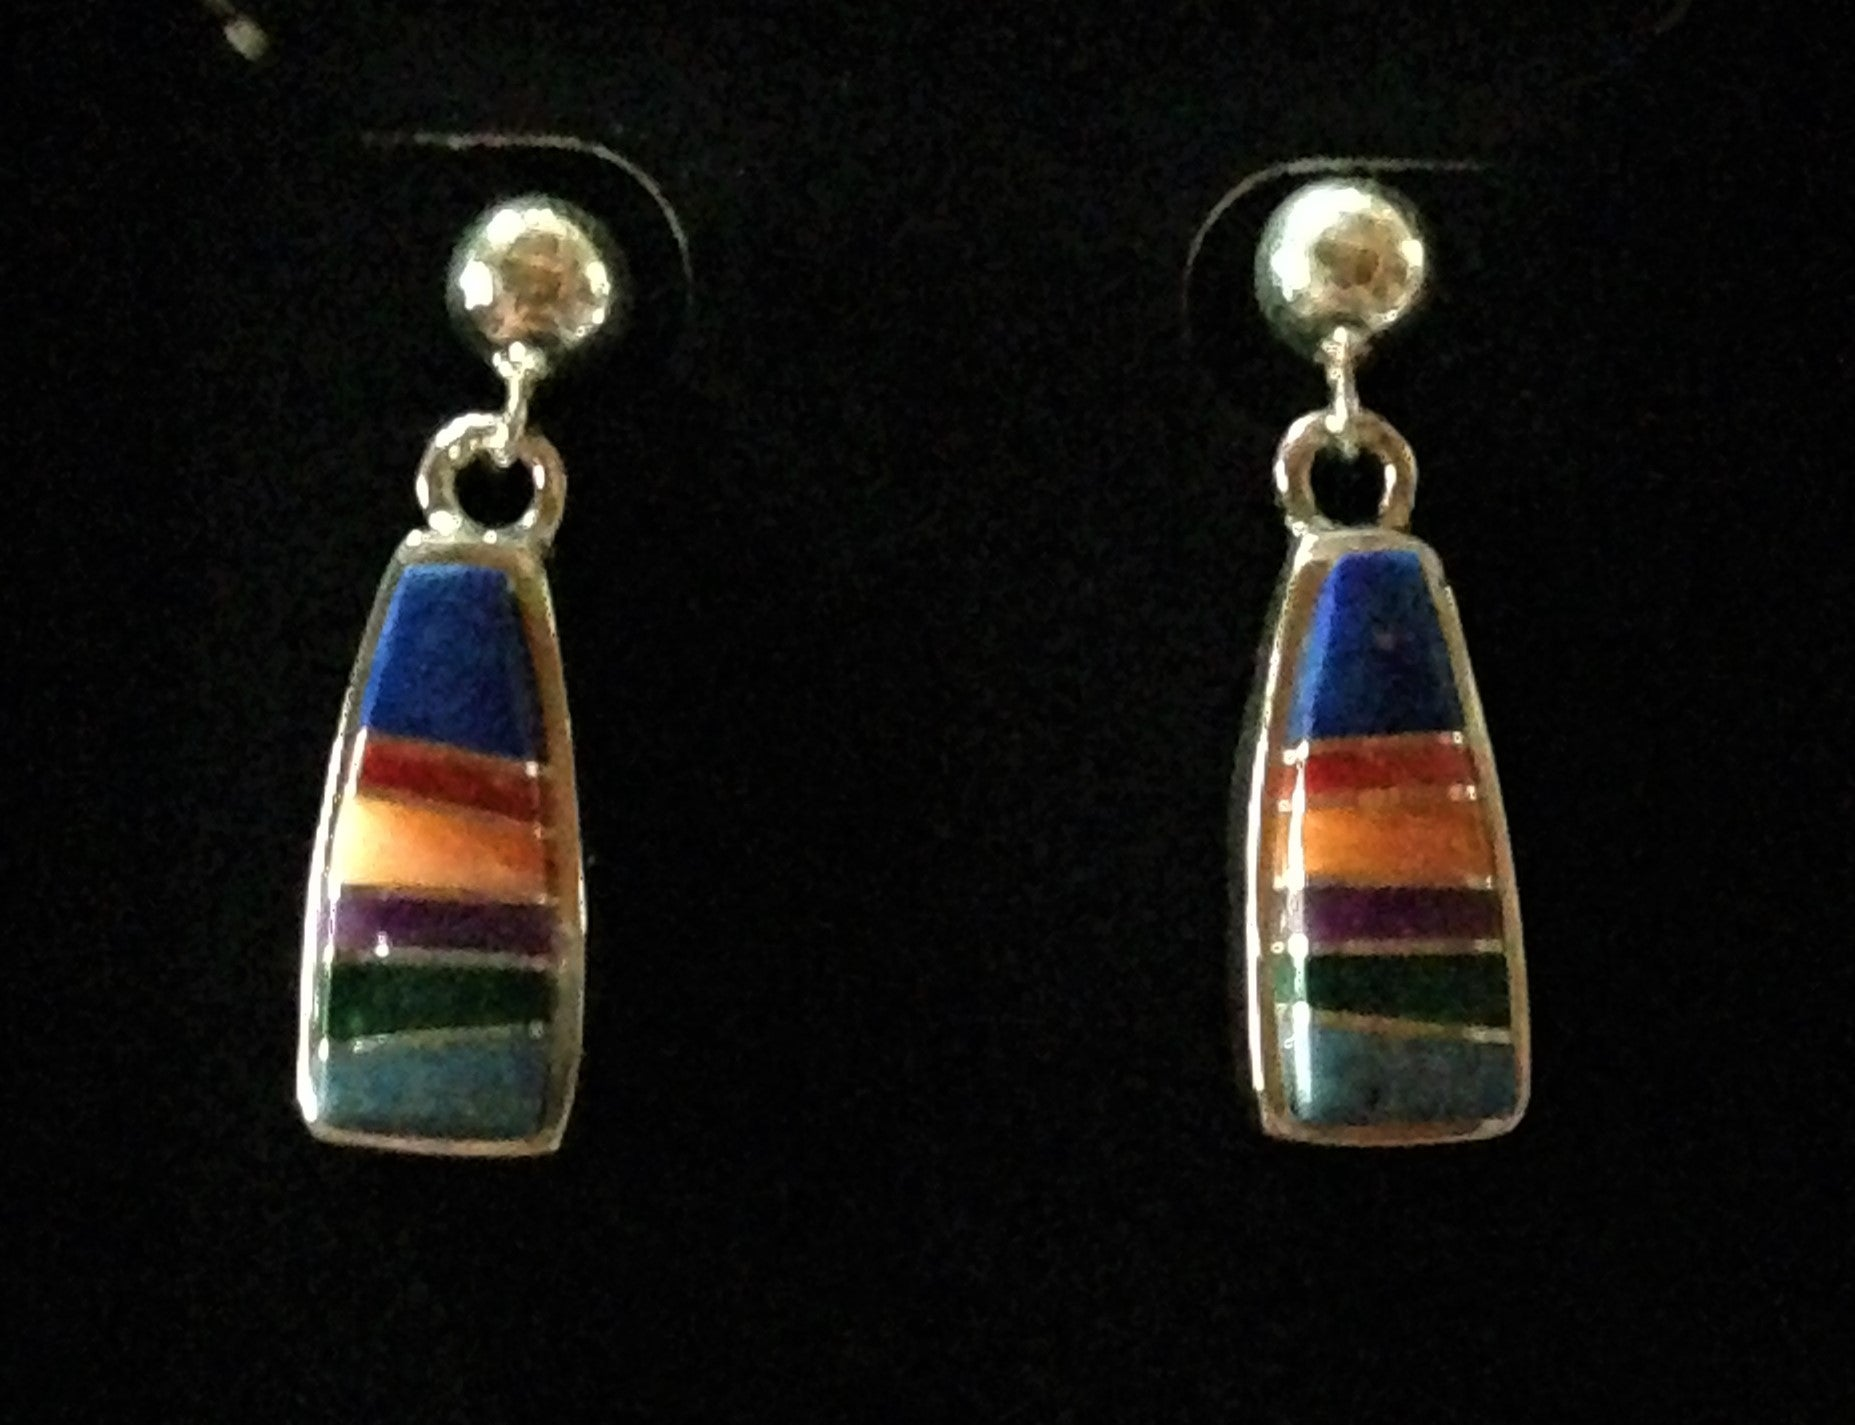 Premium Navajo Handcrafted Inlay sterling silver jewelry with genuine stones